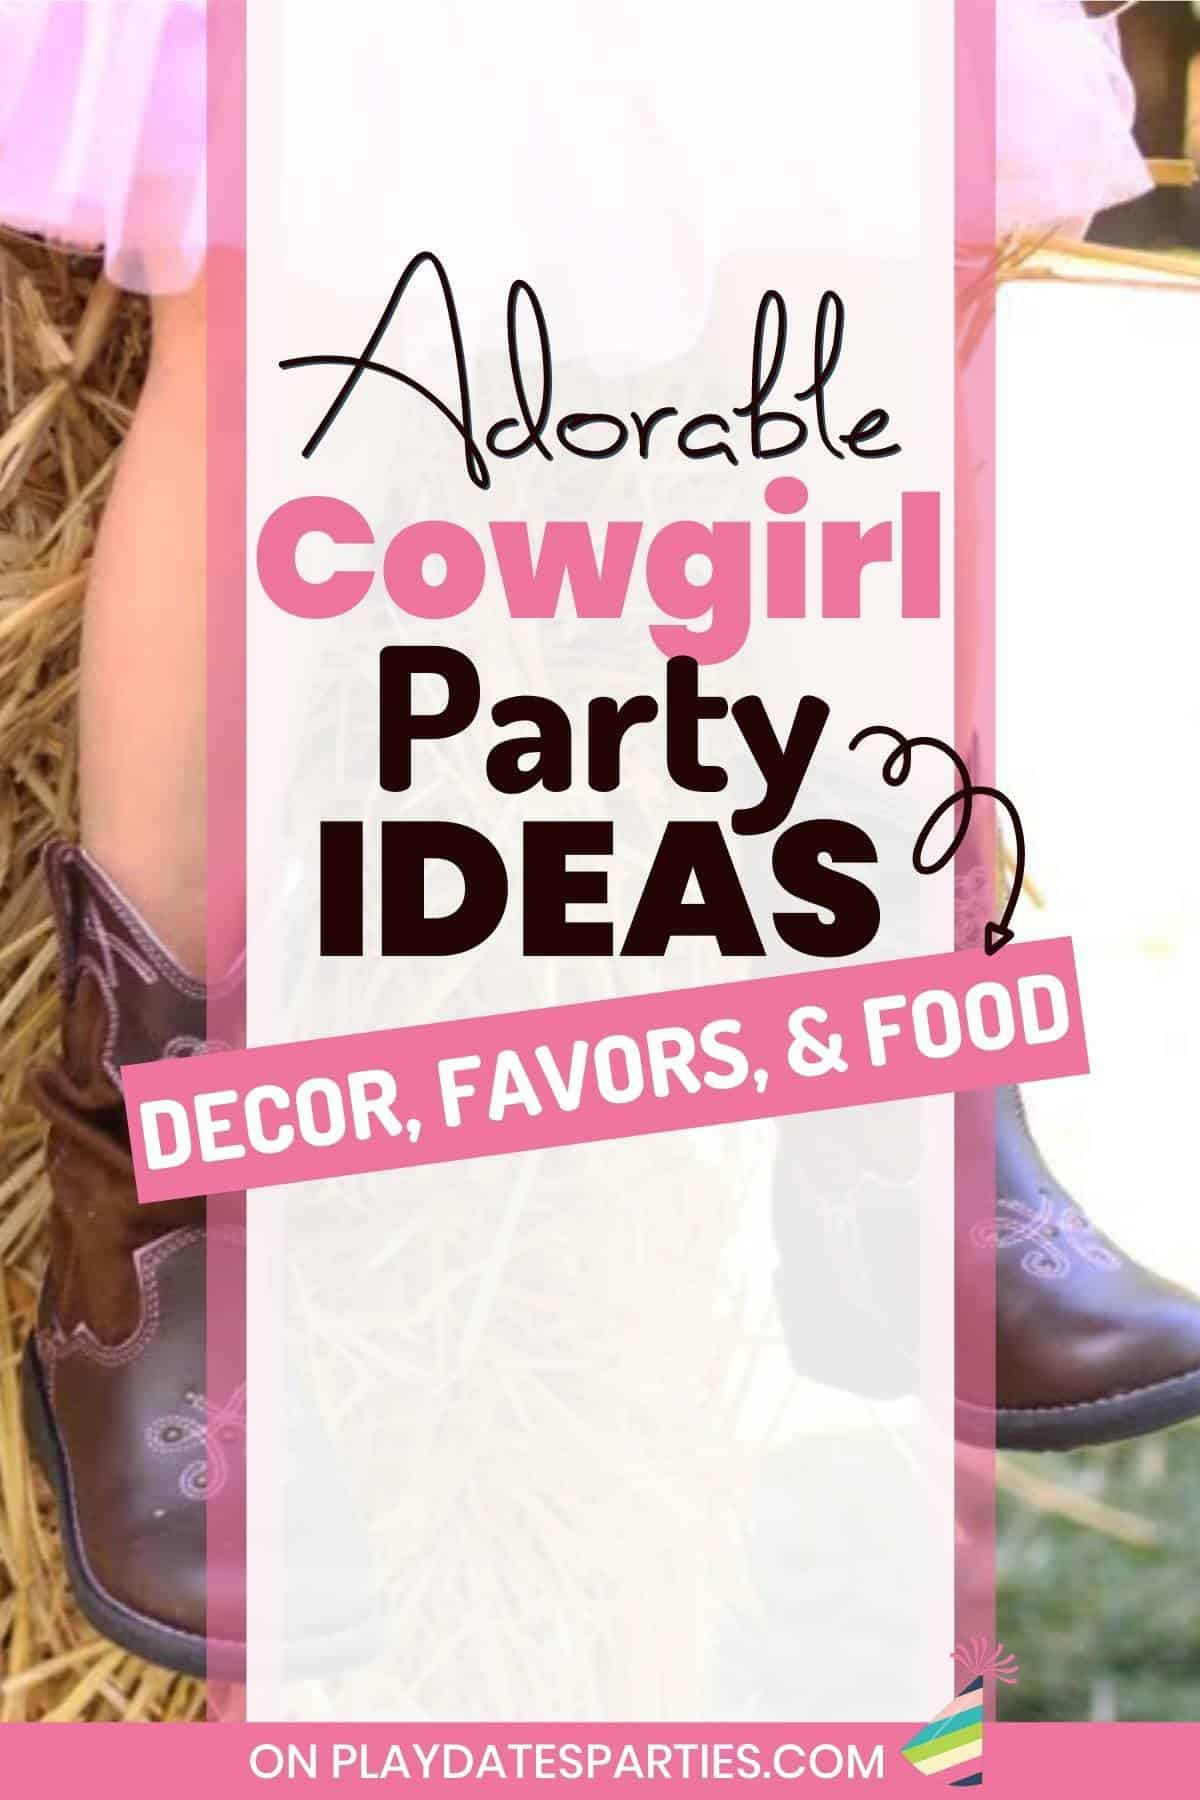 Close up of a little girl's cowgirl boots with the text overlay adorable cowgirl party ideas: Decor, favors, & food.